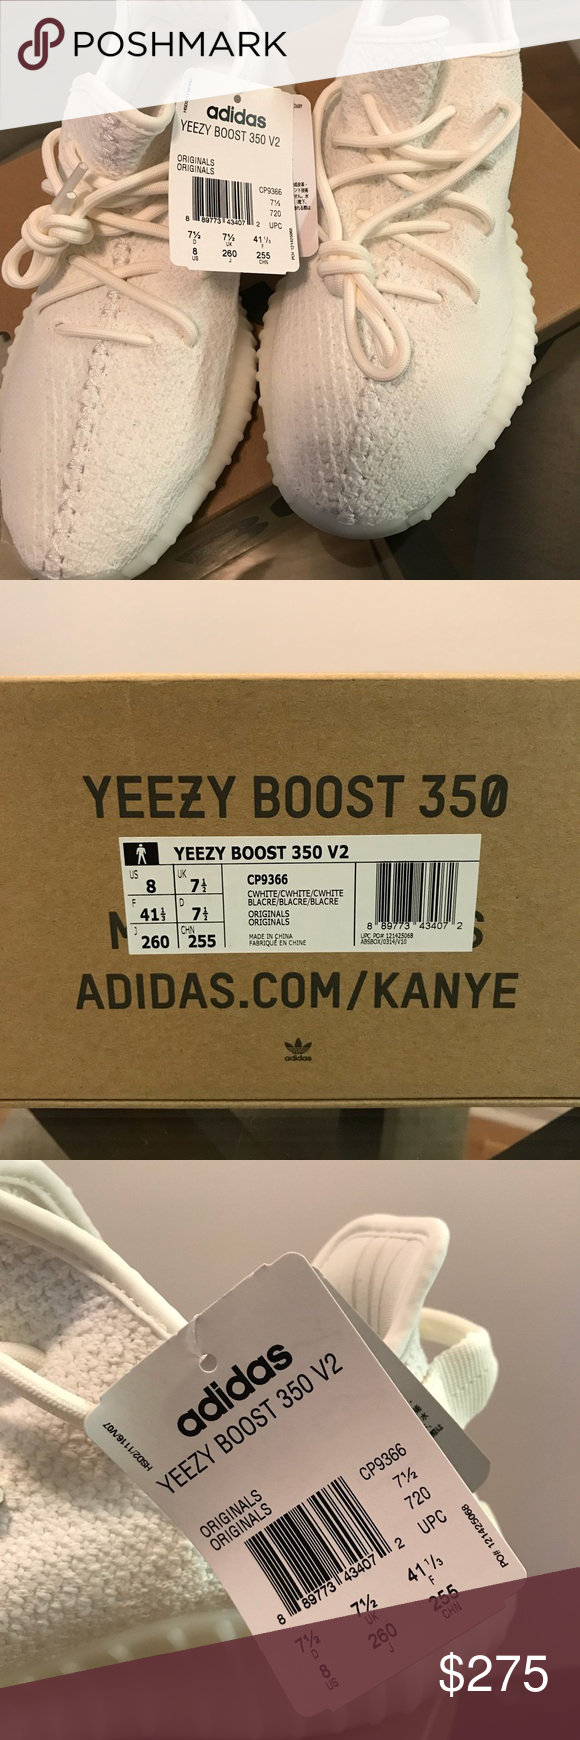 online store 46332 5bc01 Adidas Yeezy Boost 350 triple white Purchased from Yeezy ...